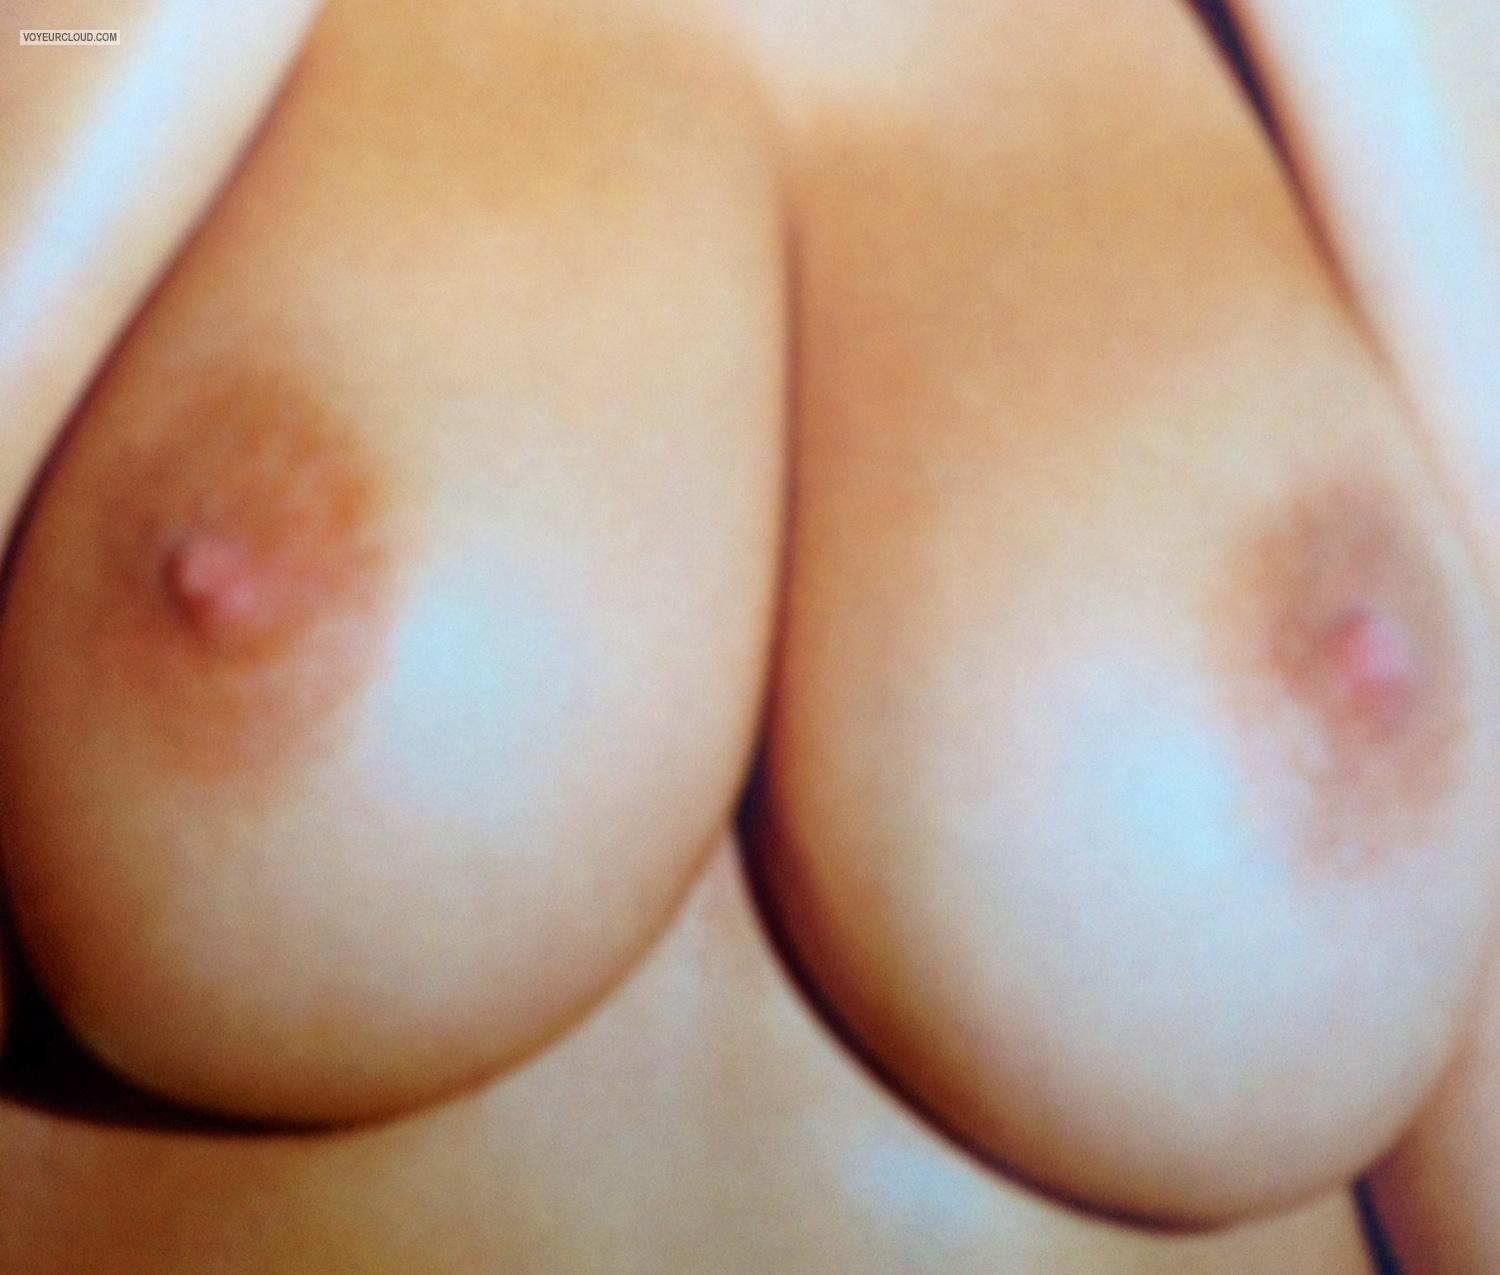 Tit Flash: Big Tits By IPhone - Jane from Canada